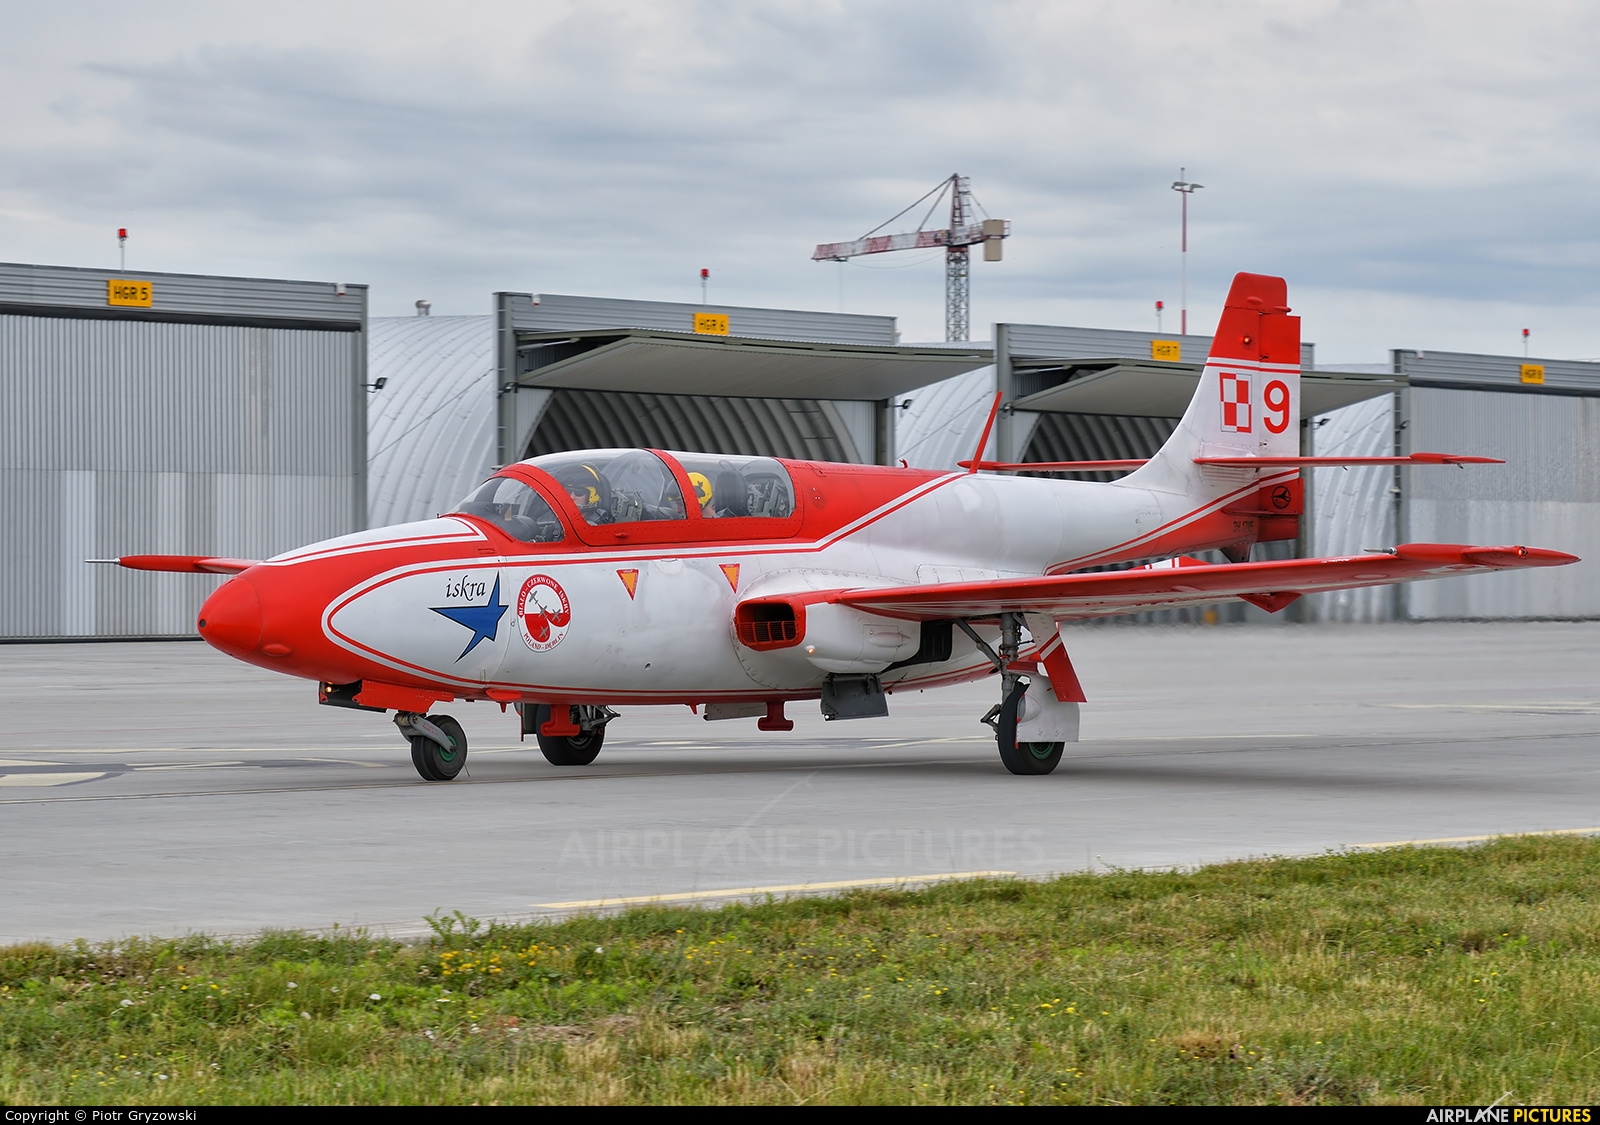 Poland - Air Force: White & Red Iskras 1715 aircraft at Dęblin